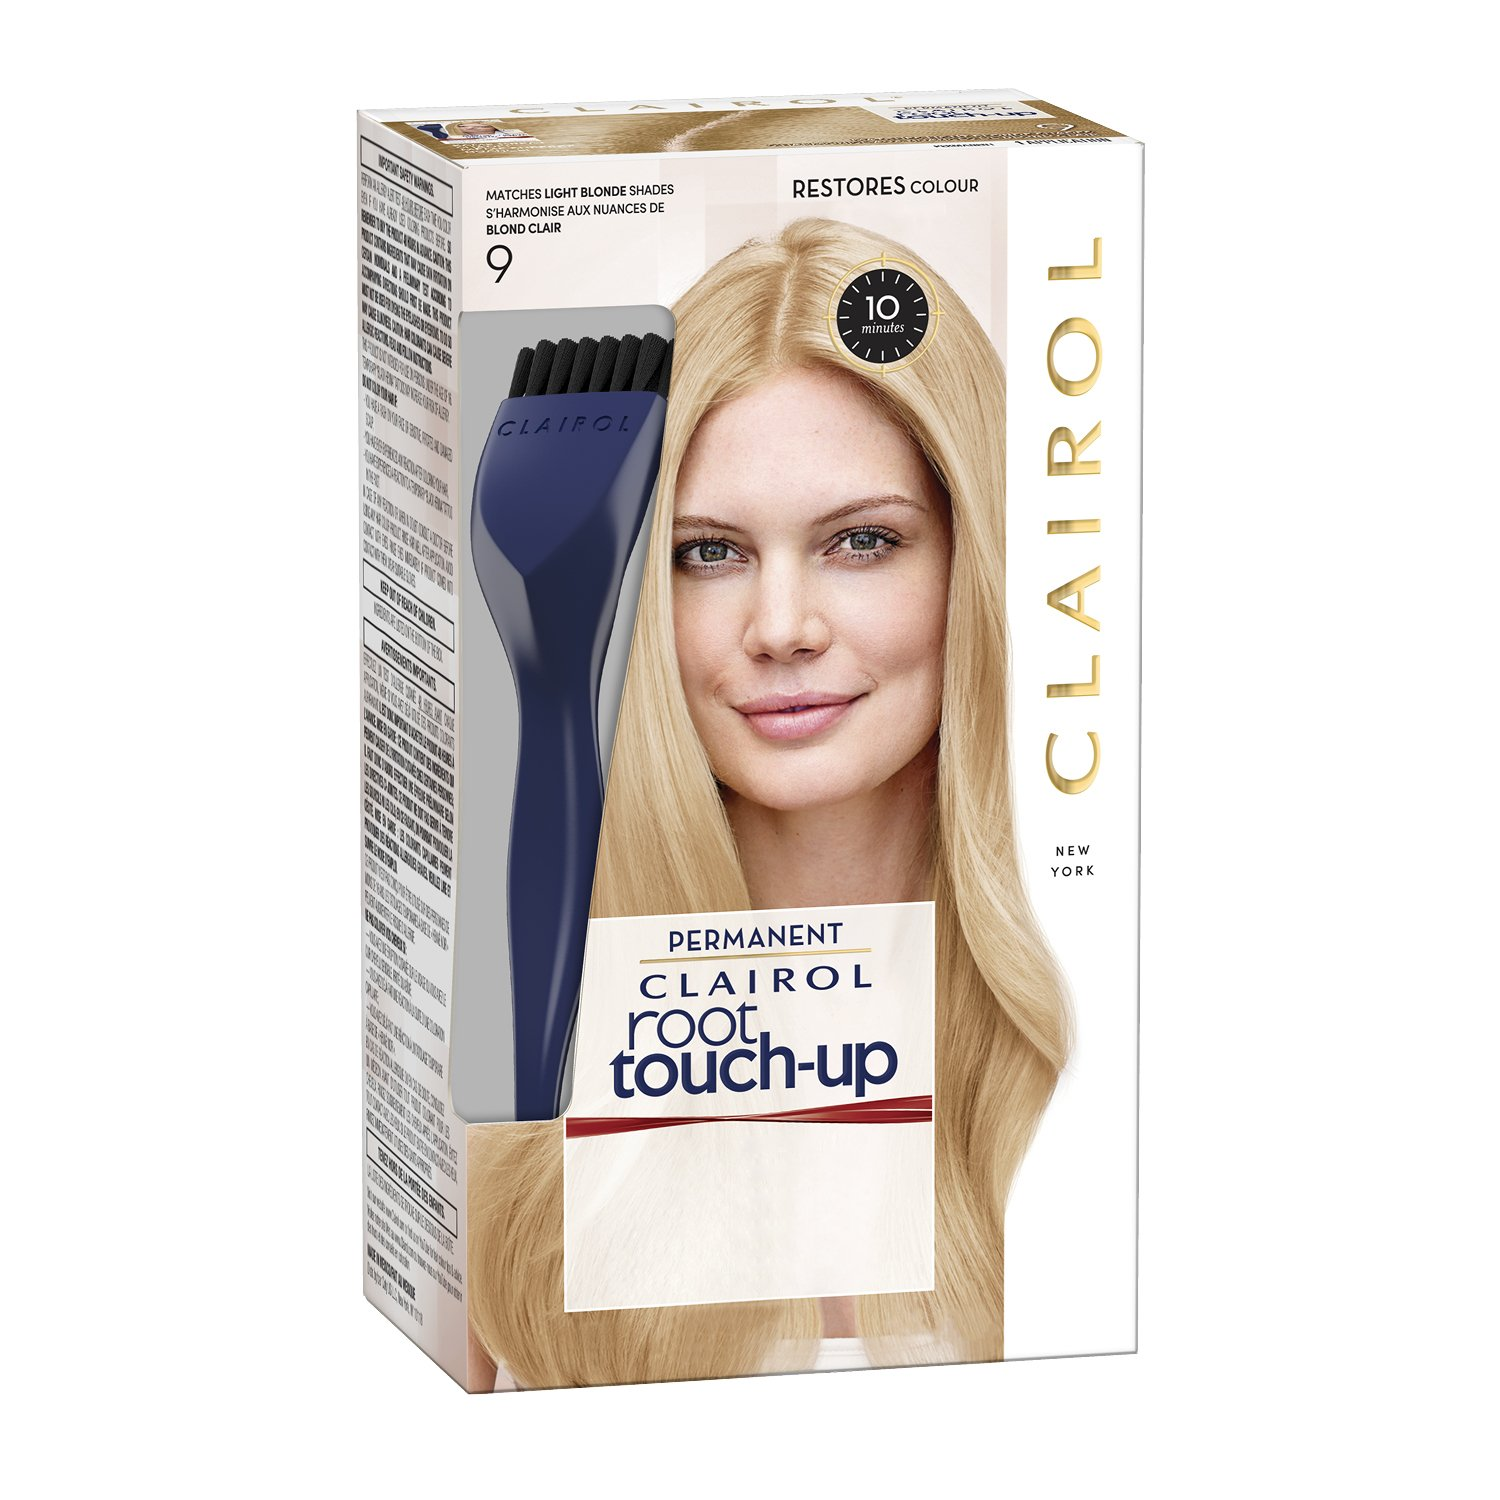 Clairol - Root Touch-up Permanent Hair Color, Blondes Coty